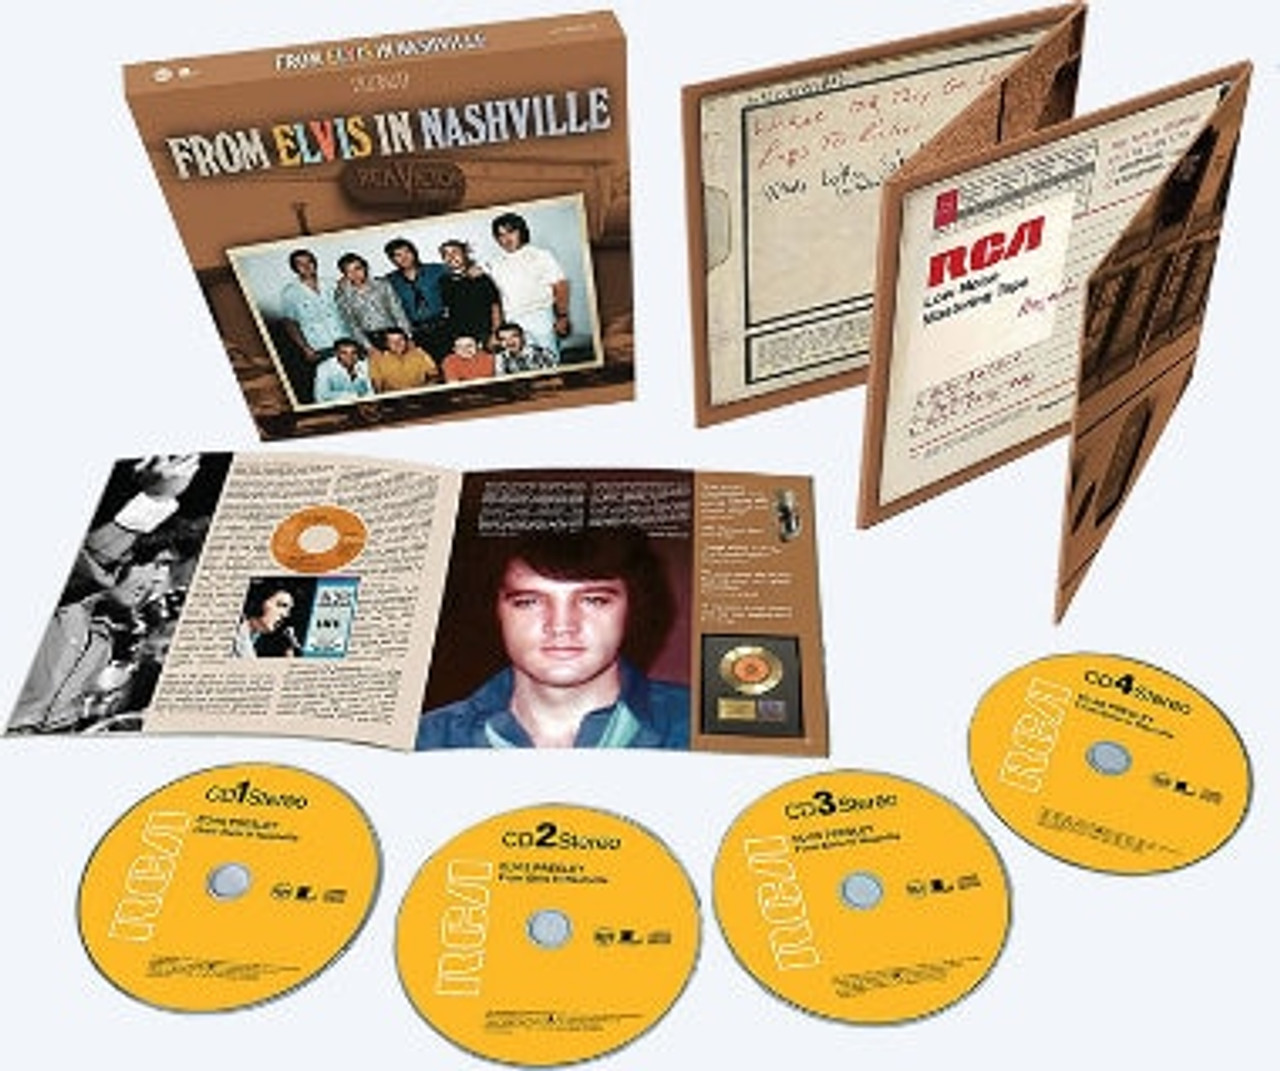 From Elvis In Nashville 4 CD Set from Sony Music - Elvis Presley WebShop